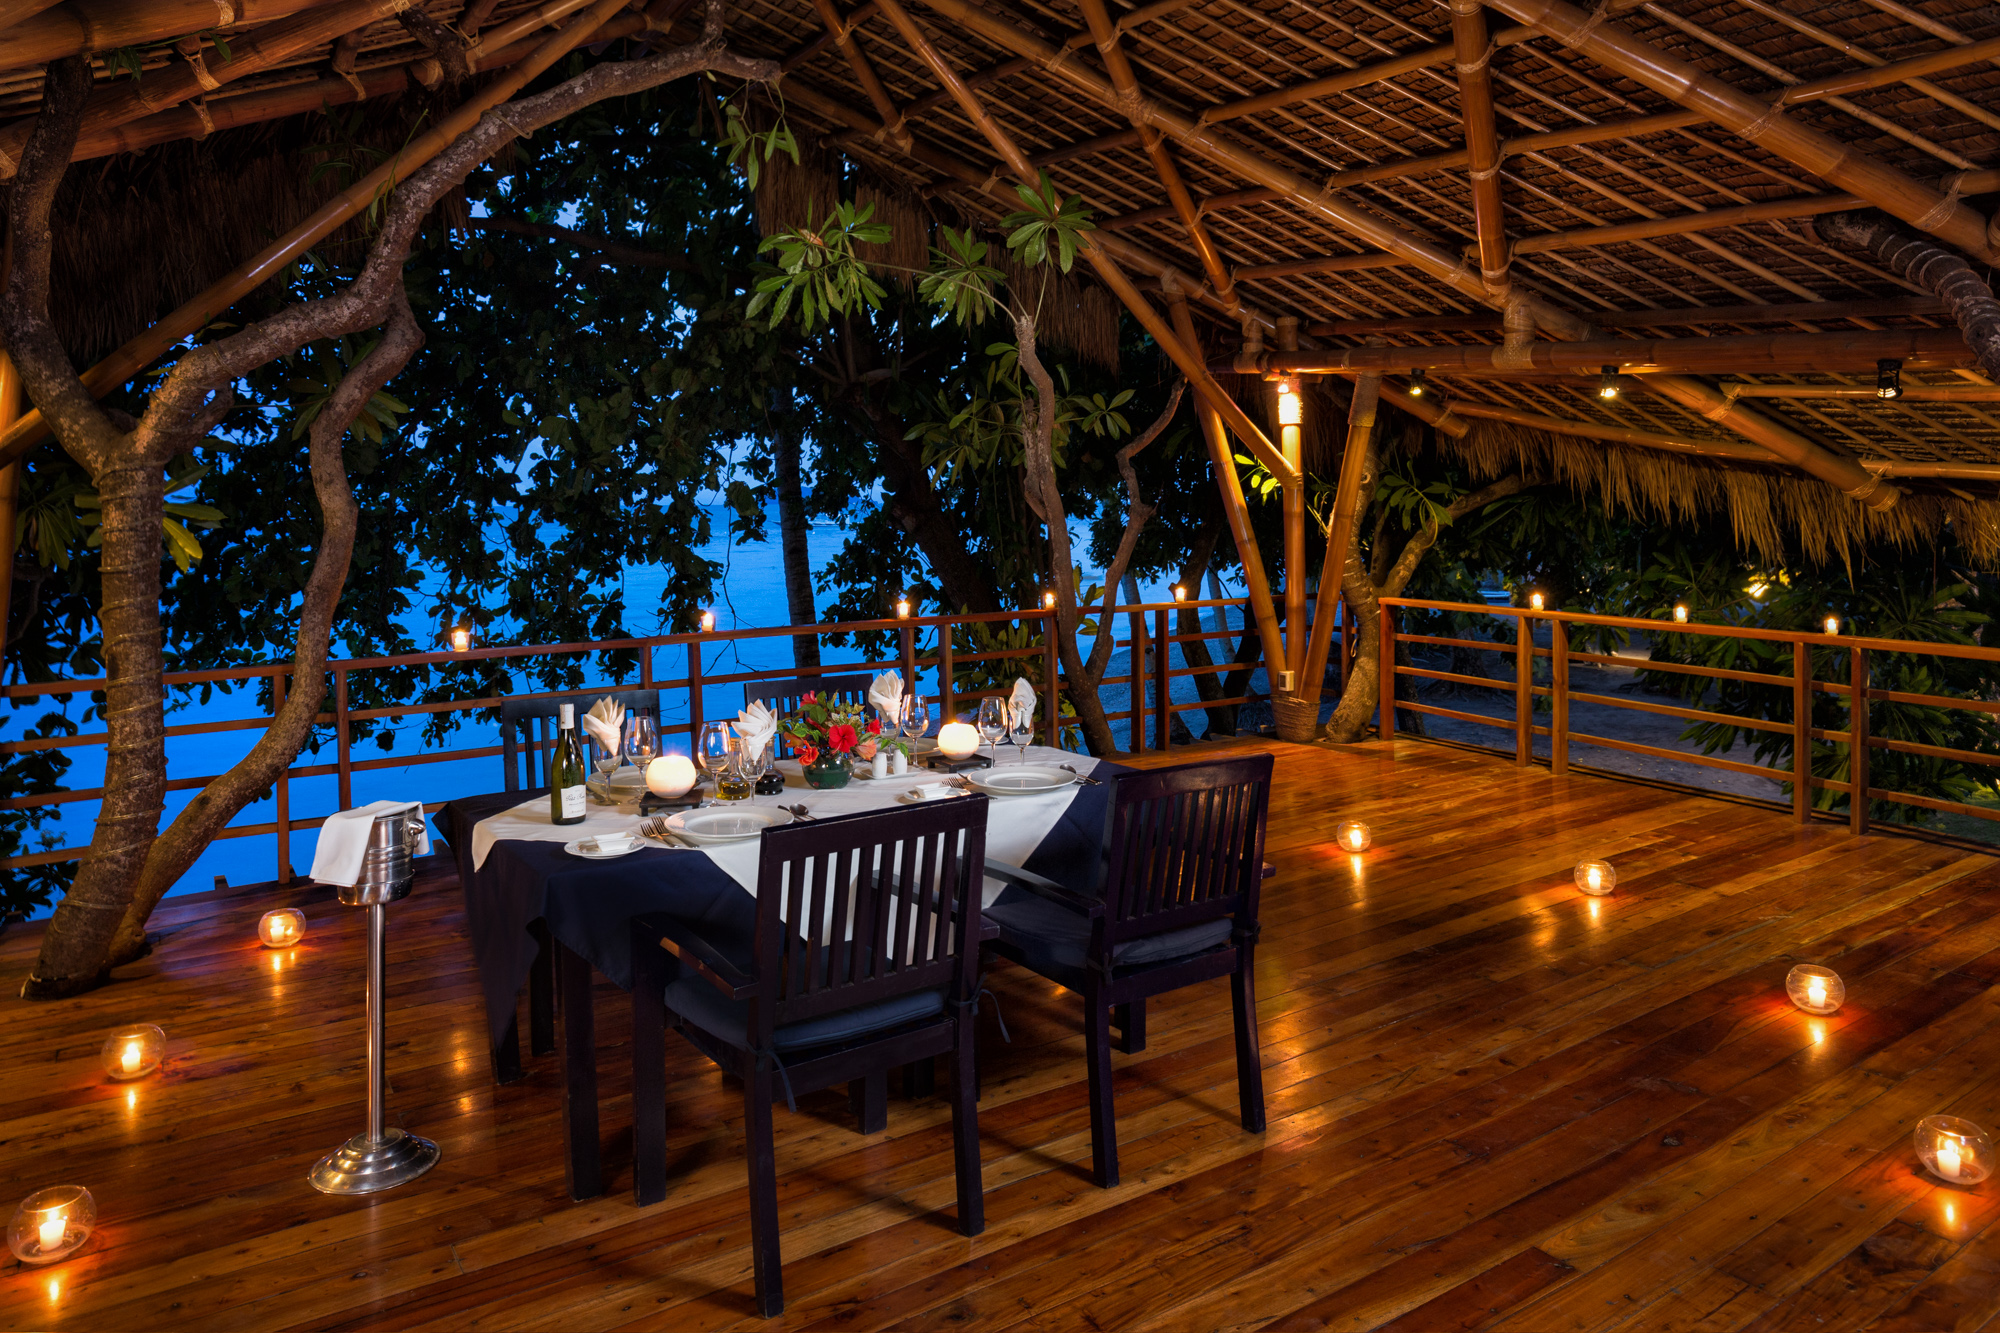 Private dining in the tree house